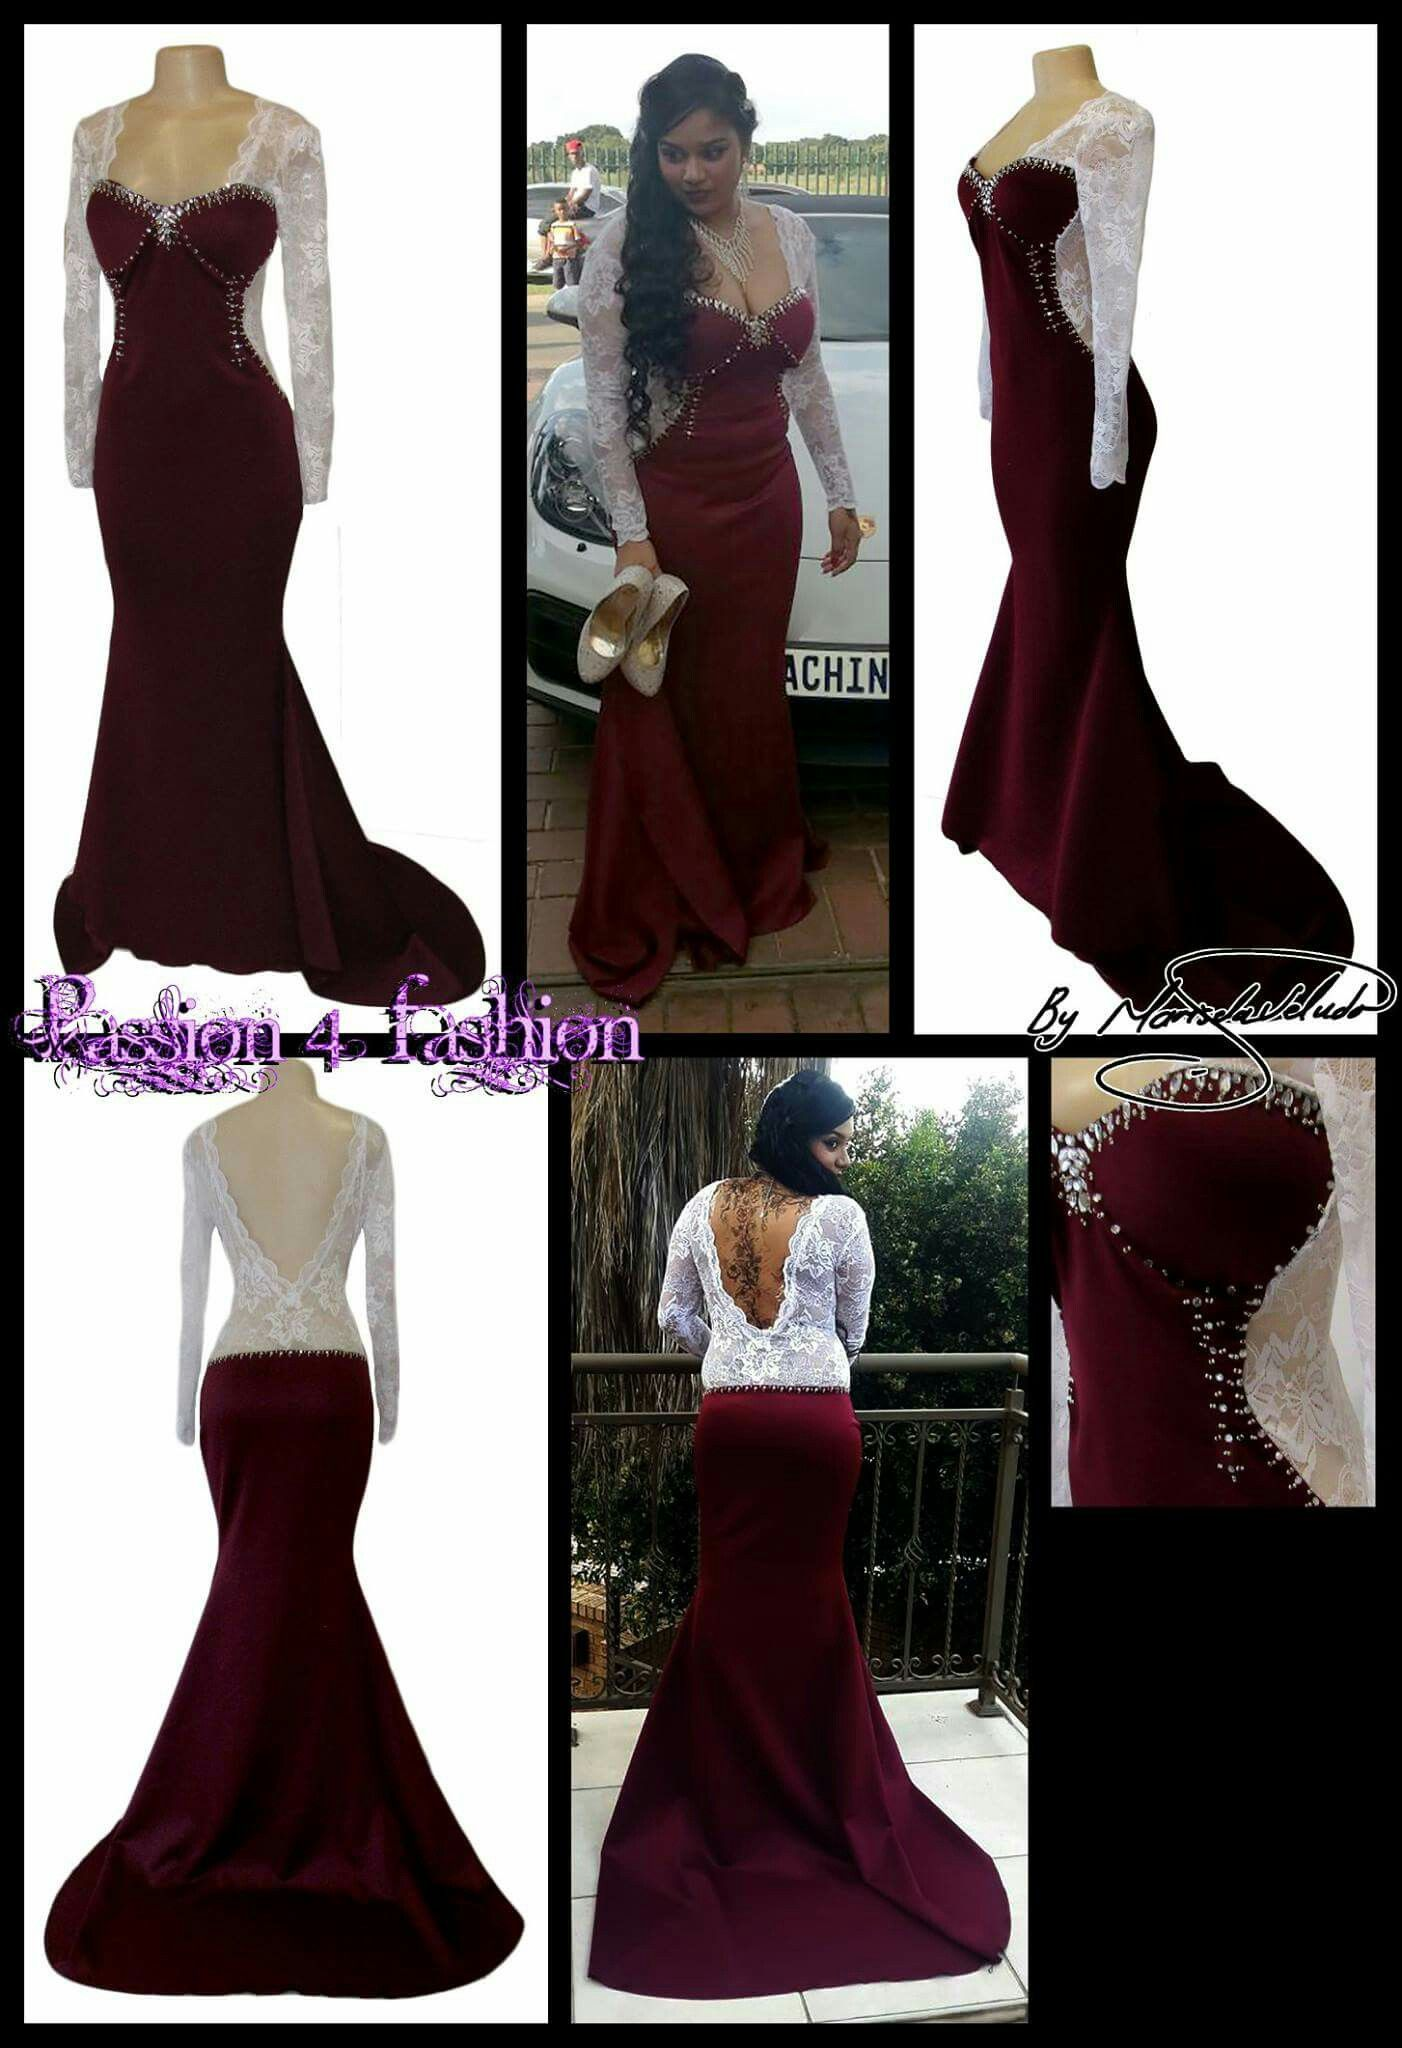 Matric Farewell Prom Make Up: Maroon & White Lace Matric Dance Dress. With A V Open Back